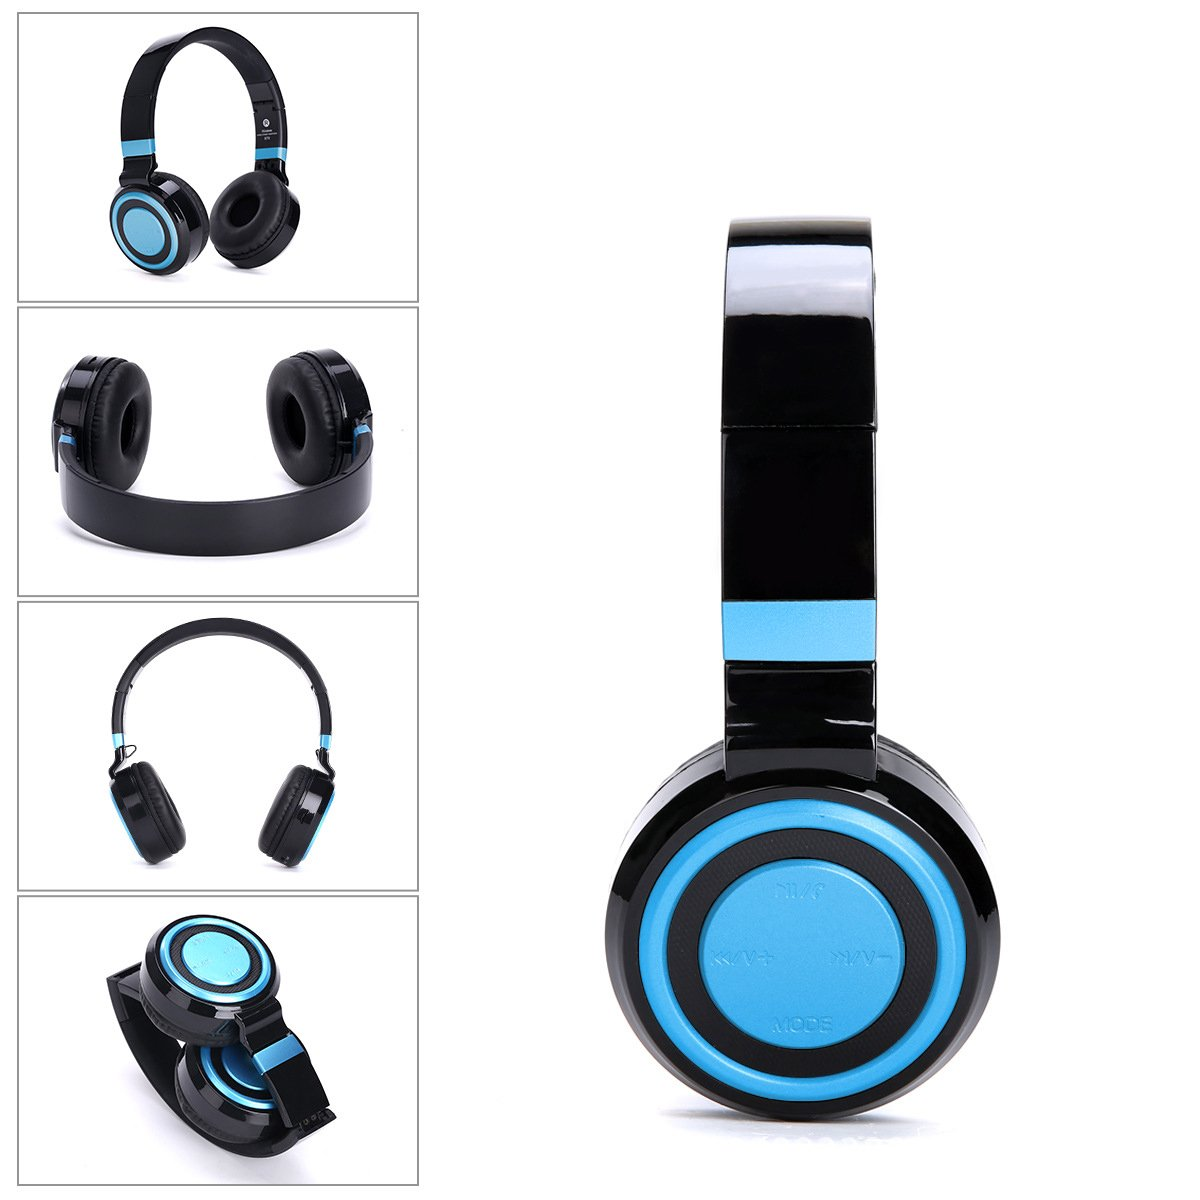 MOOSENG Bluetooth Headphones Over Ear Hi-Fi Stereo Wireless Headset Foldable Soft Memory-Protein Earmuffs with Built-in Mic and Wired Mode for PC/Cell Phones/TV by MOOSENG